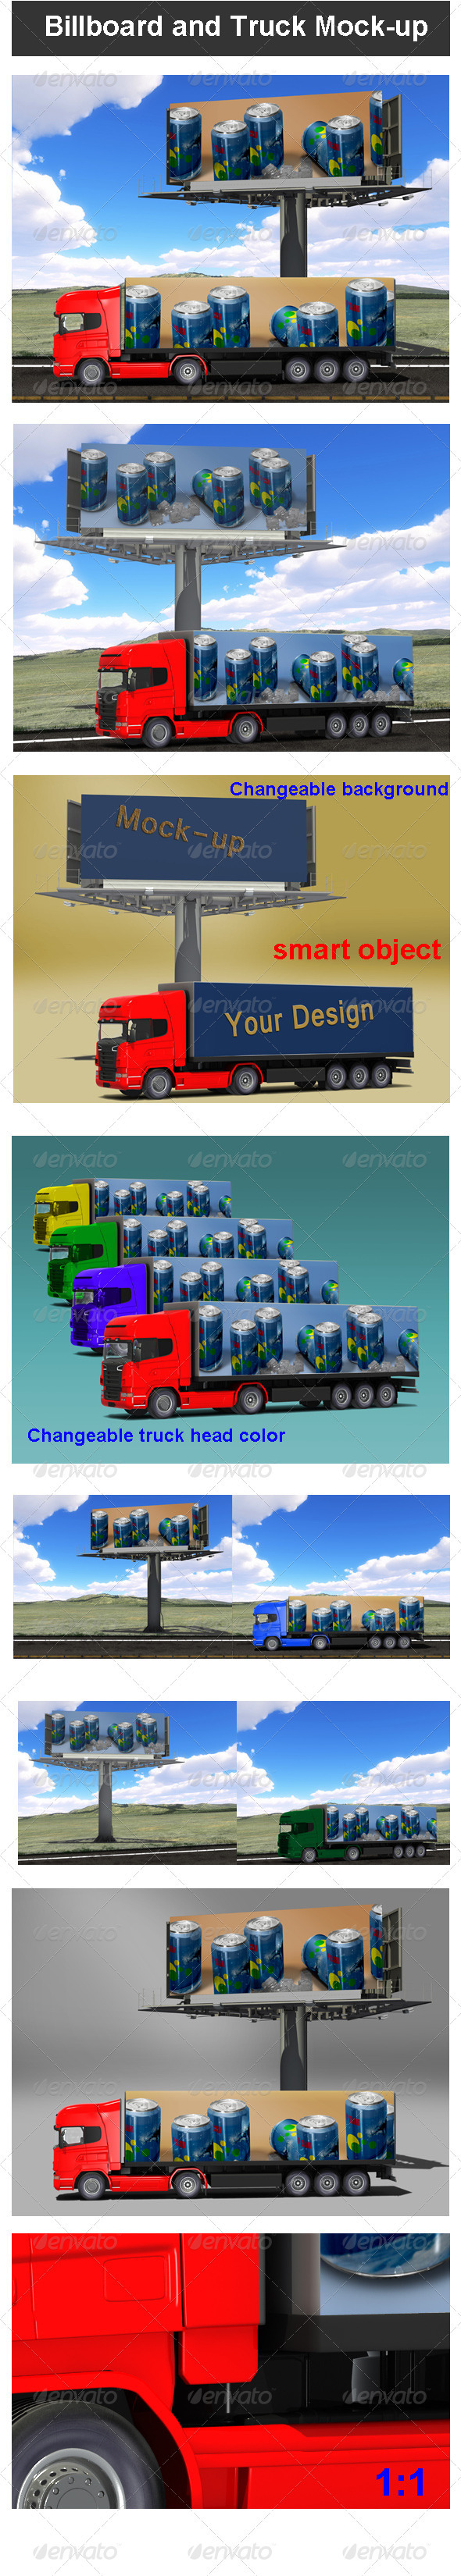 GraphicRiver Billboard and Truck Mock-up 3419212